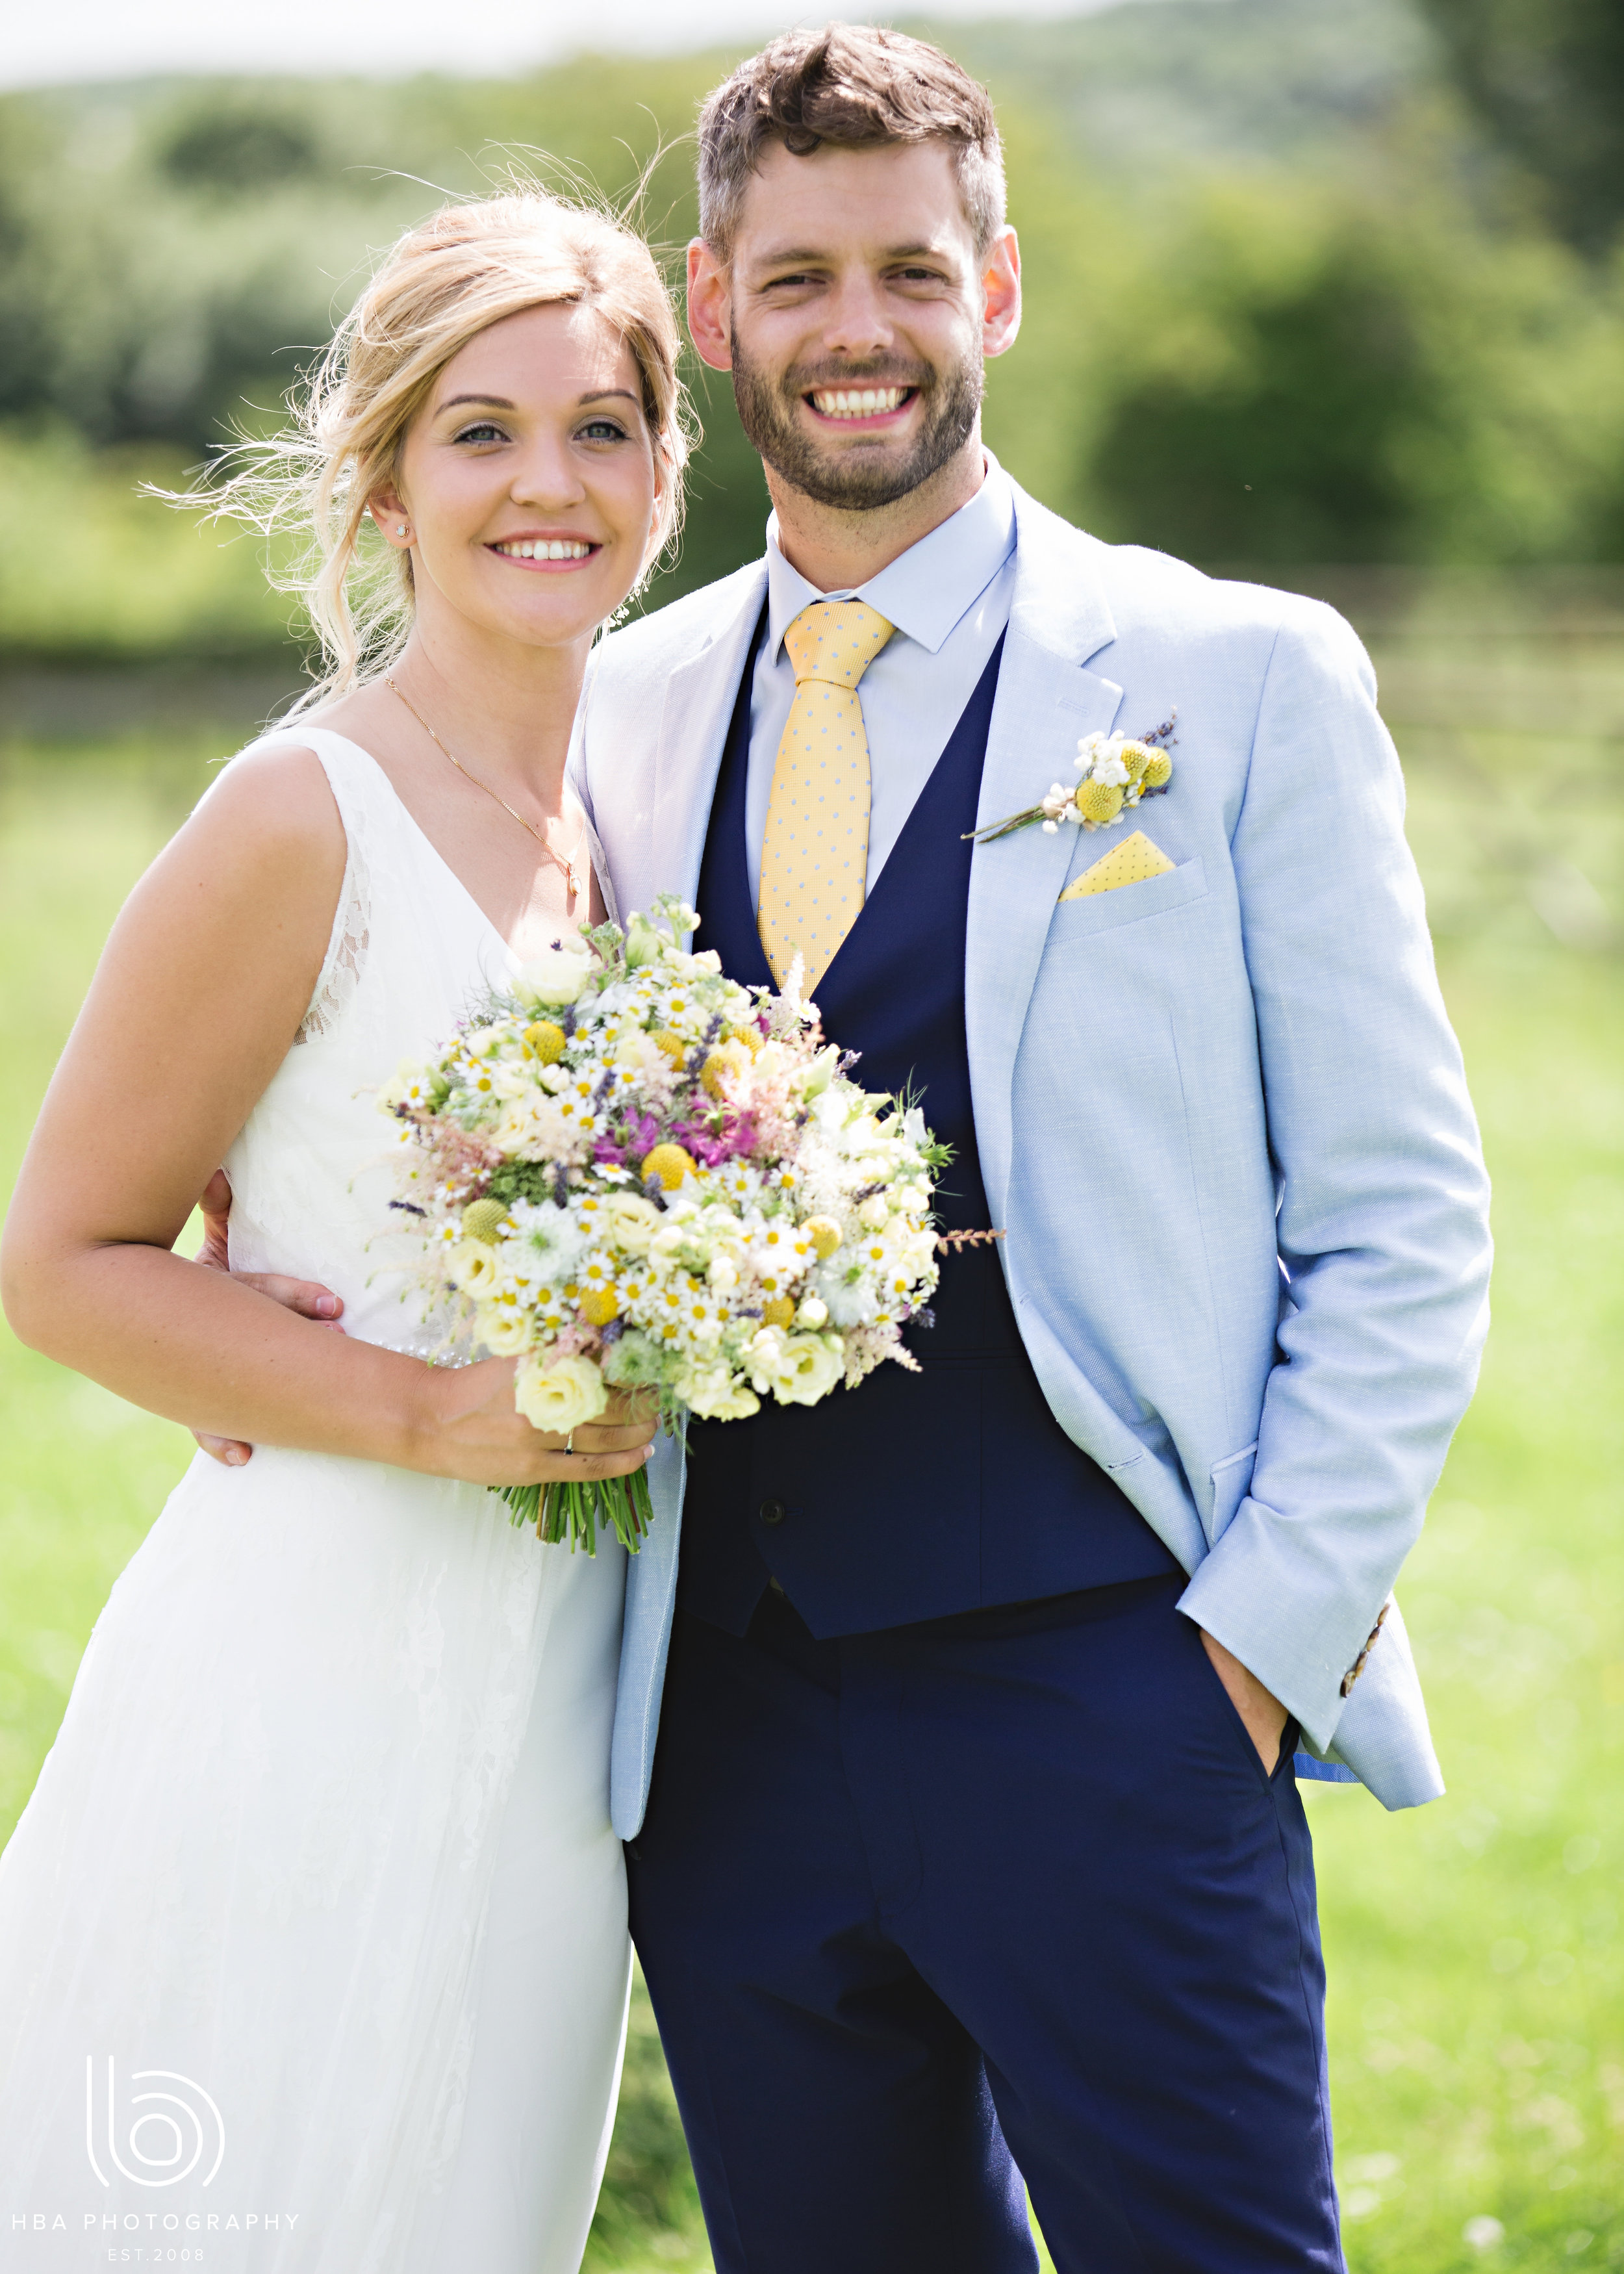 The gorgeous couple and their Tineke blooms!